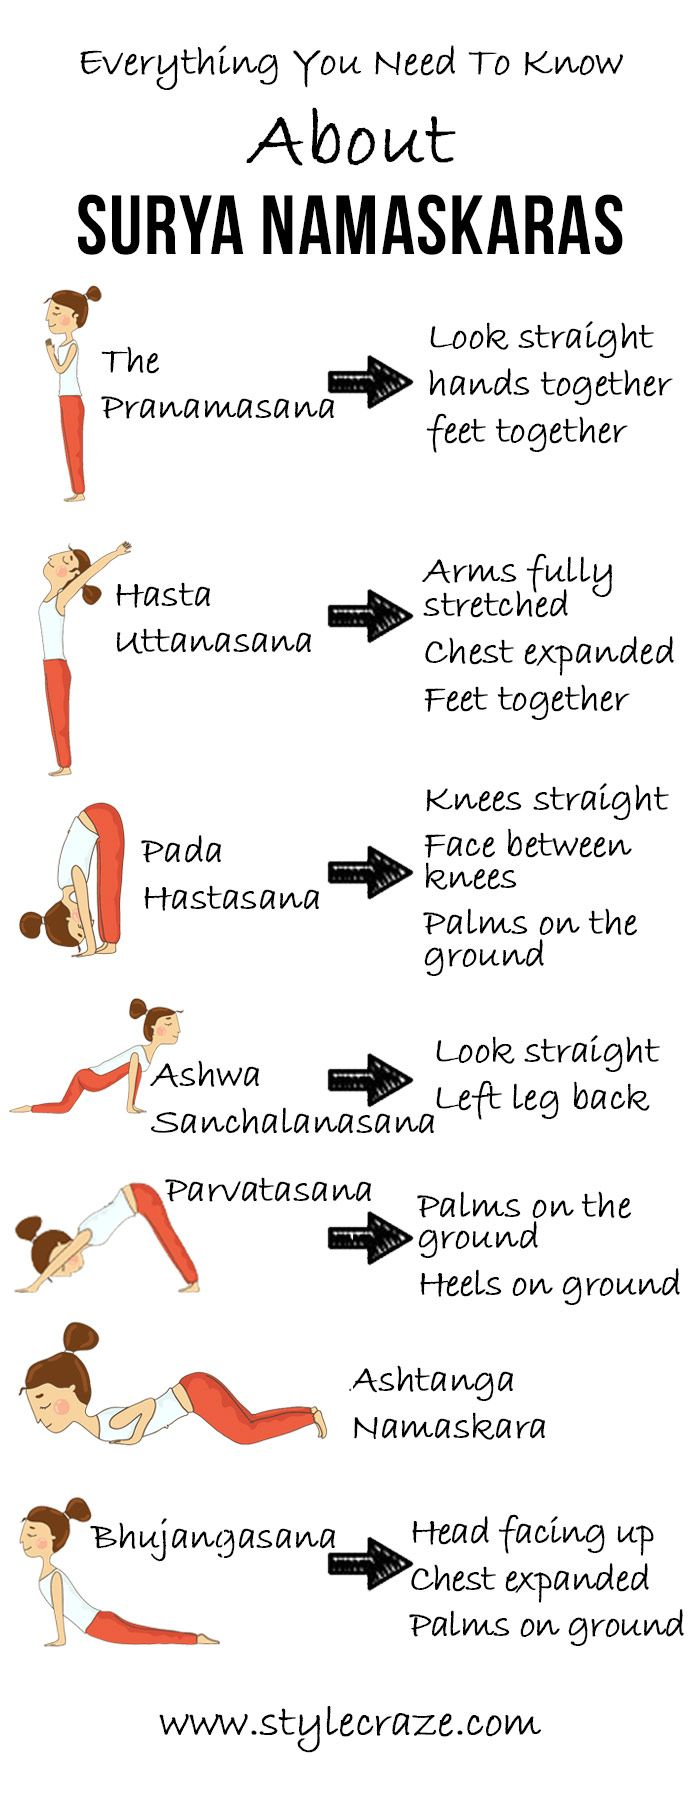 The Complete Guide To Surya Namaskar Or Sun Salutation Complete Body Workout Surya Namaskar Surya